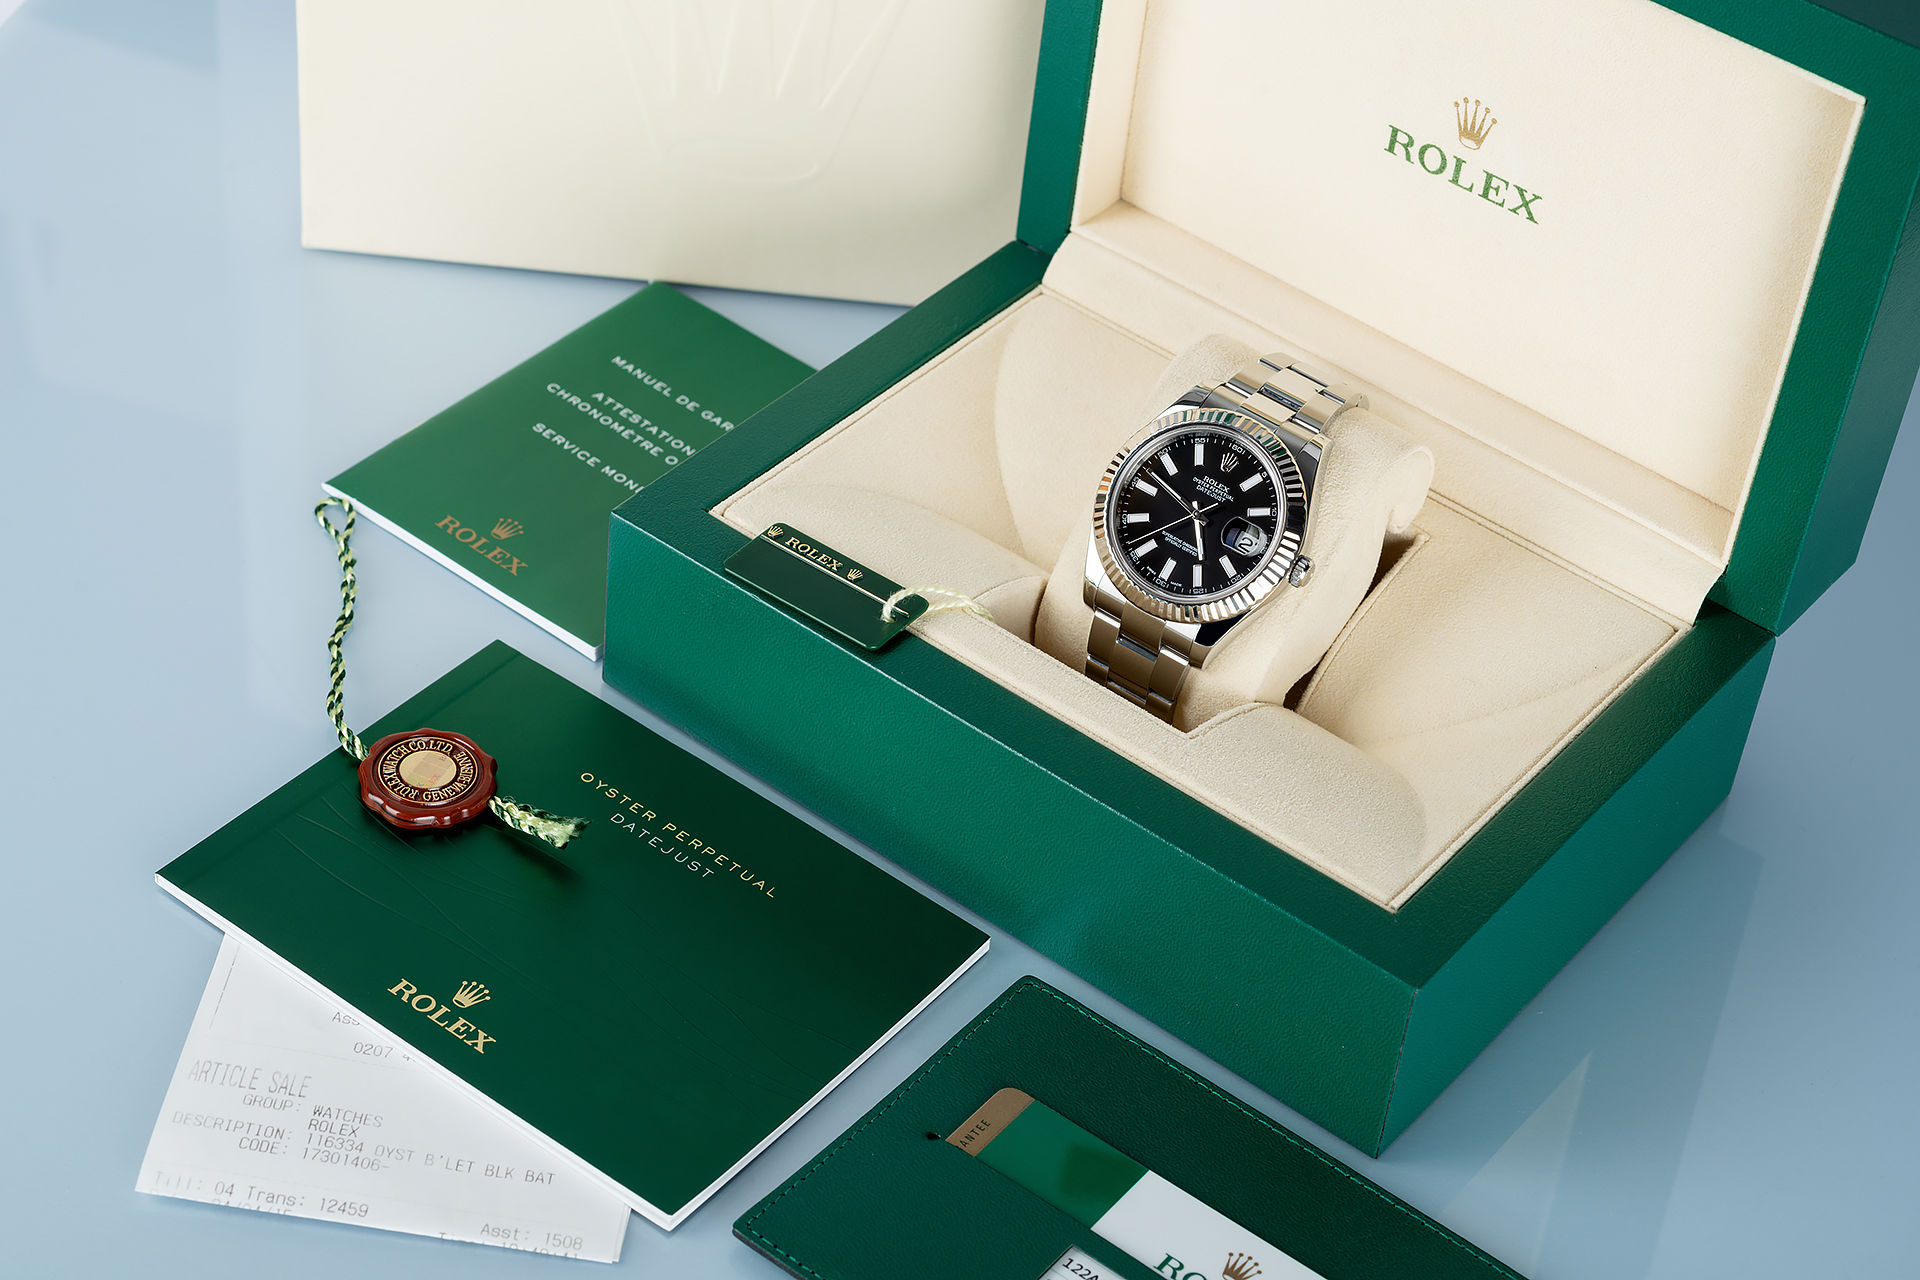 ref 116334 | White Gold Bezel 'Full Set' | Rolex Datejust II